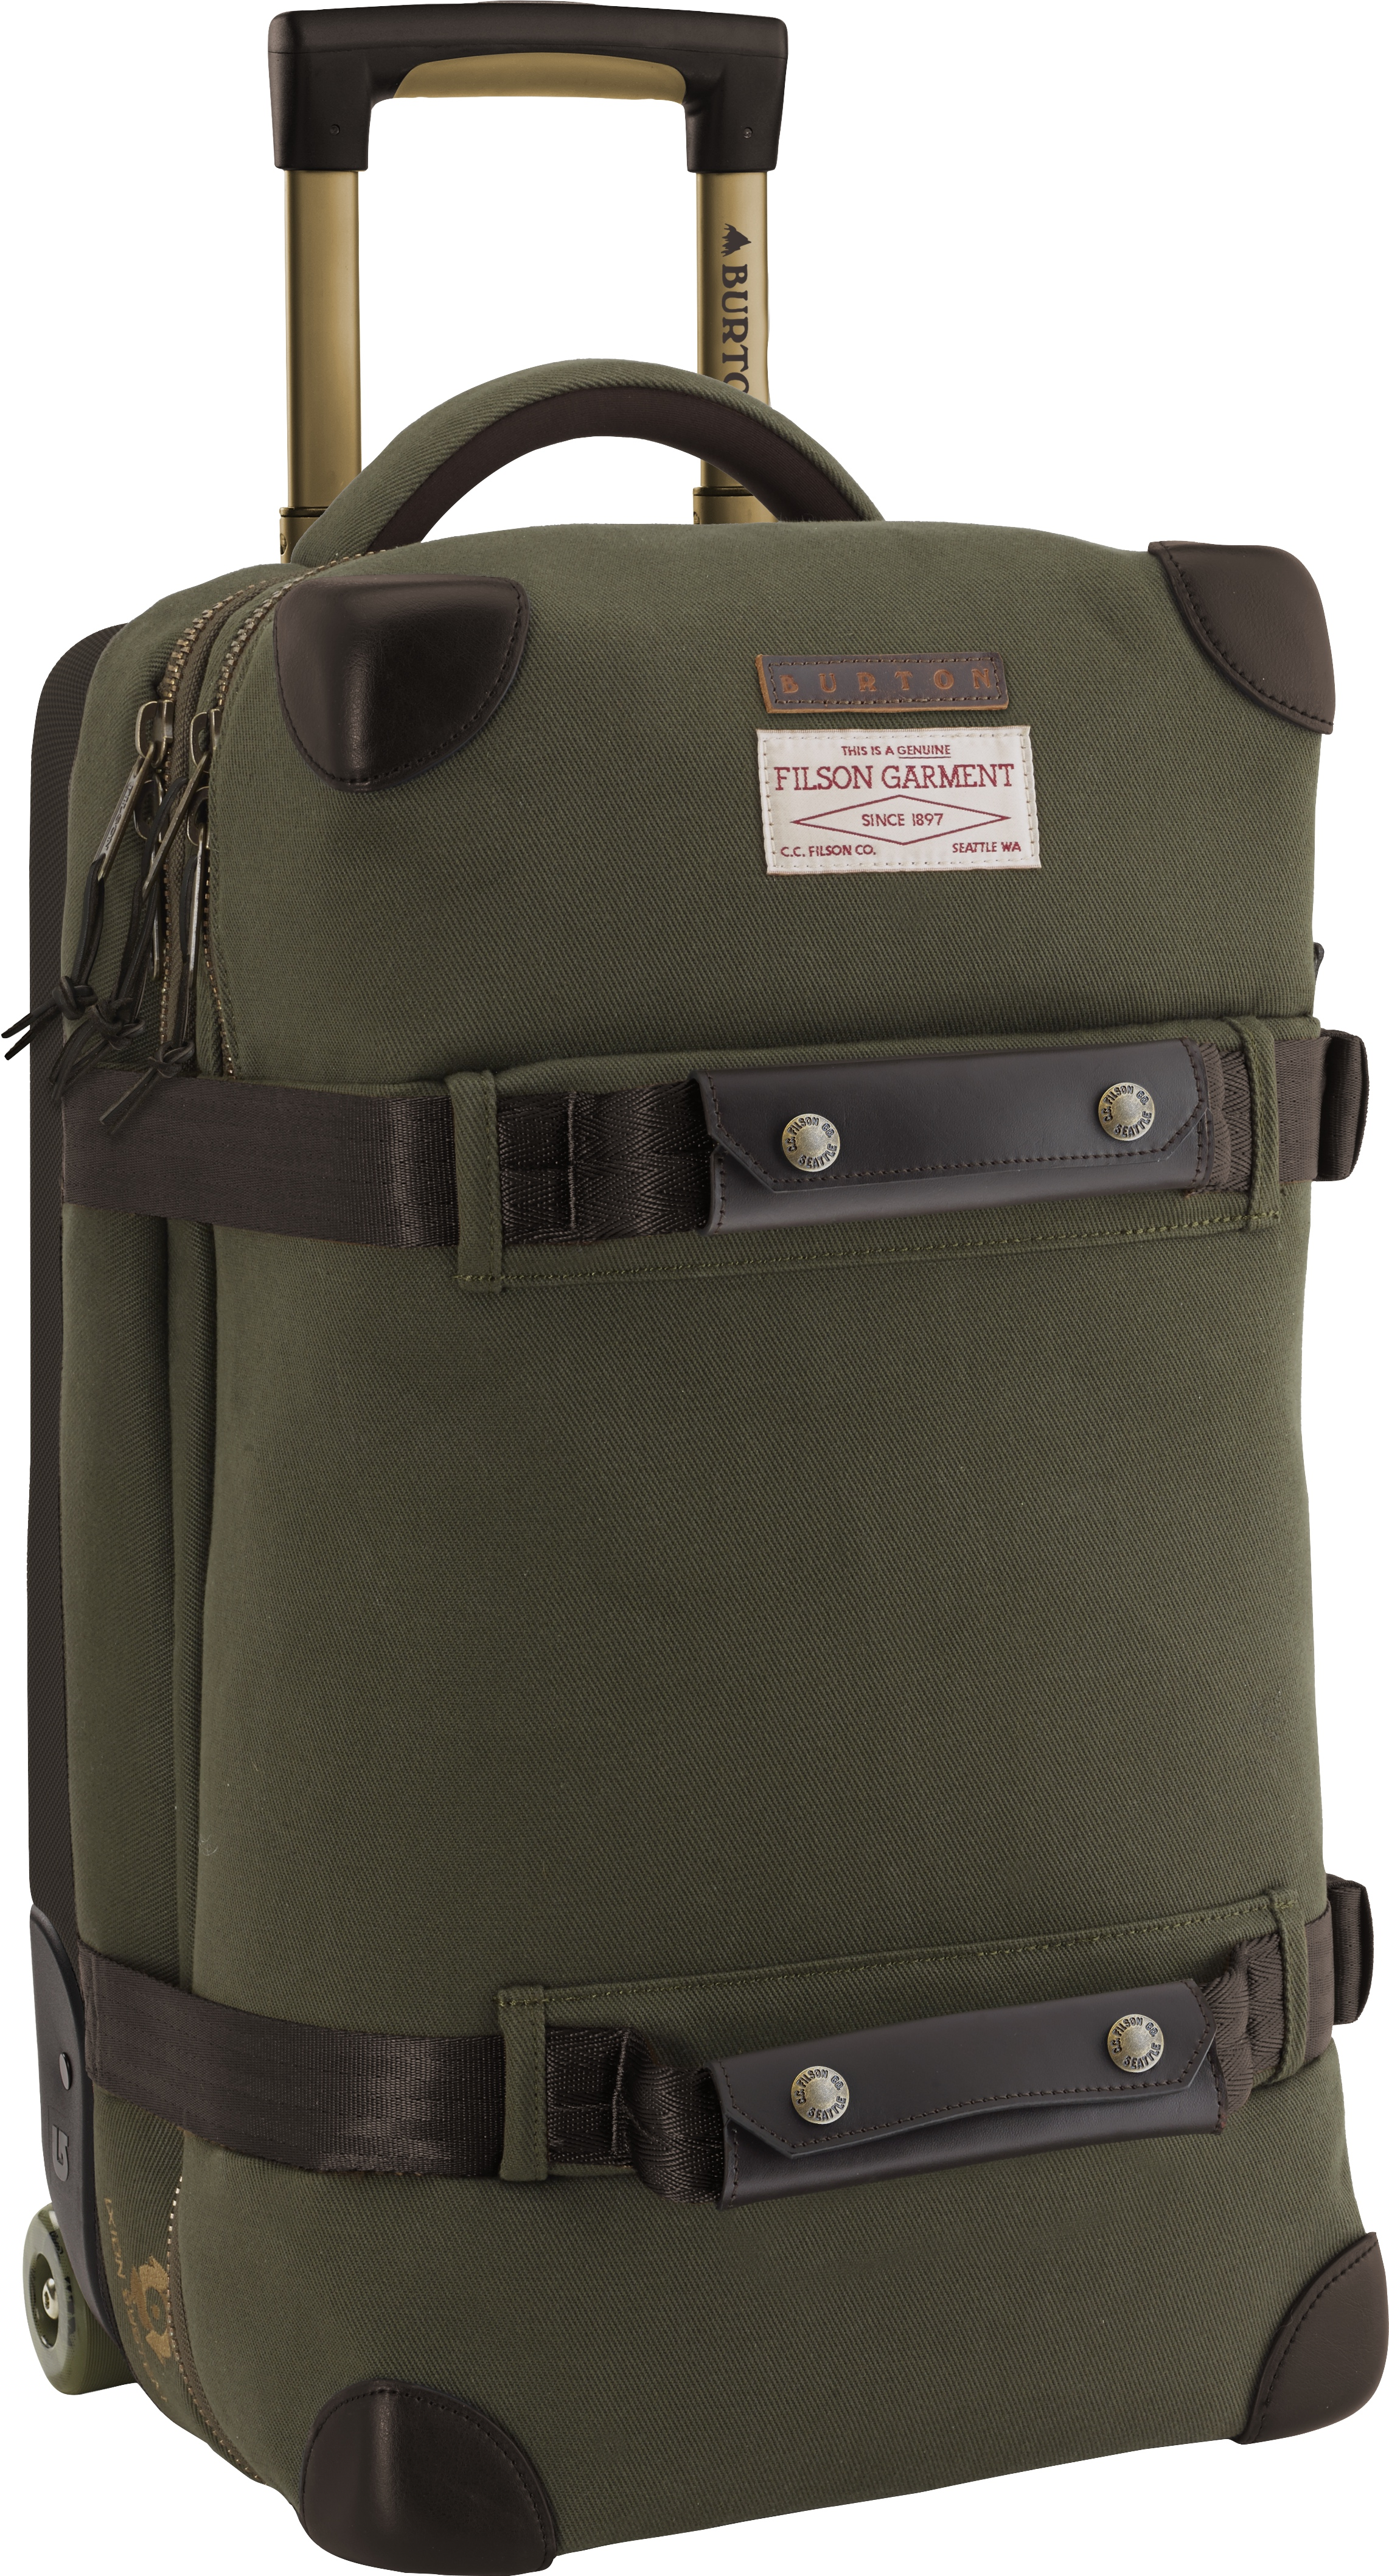 Burton x Filson® Wheelie Flight Deck Travel Bag, $400